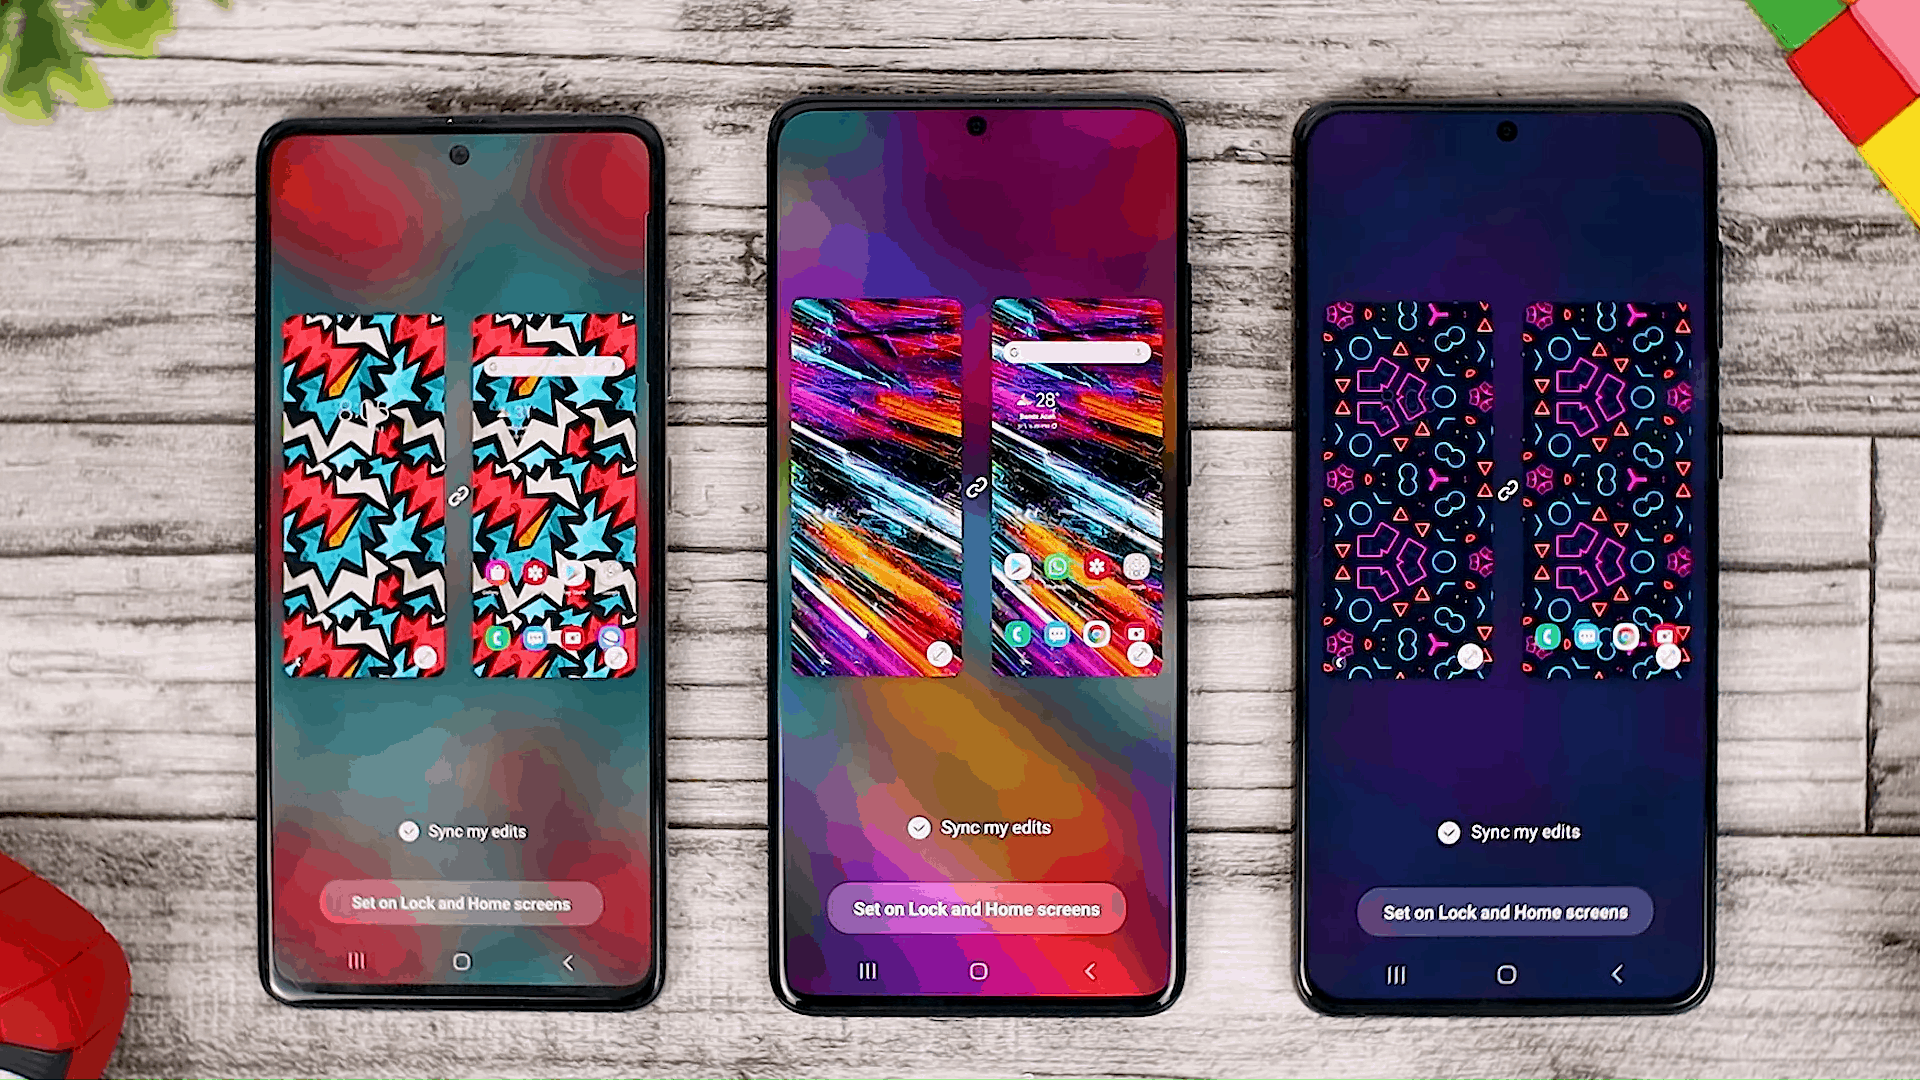 Wallpaper Interactive Preview - One UI 3.0 features of Samsung Galaxy A51 and its comparison with the Galaxy S20+ and One UI 3.1 on the Galaxy S21+